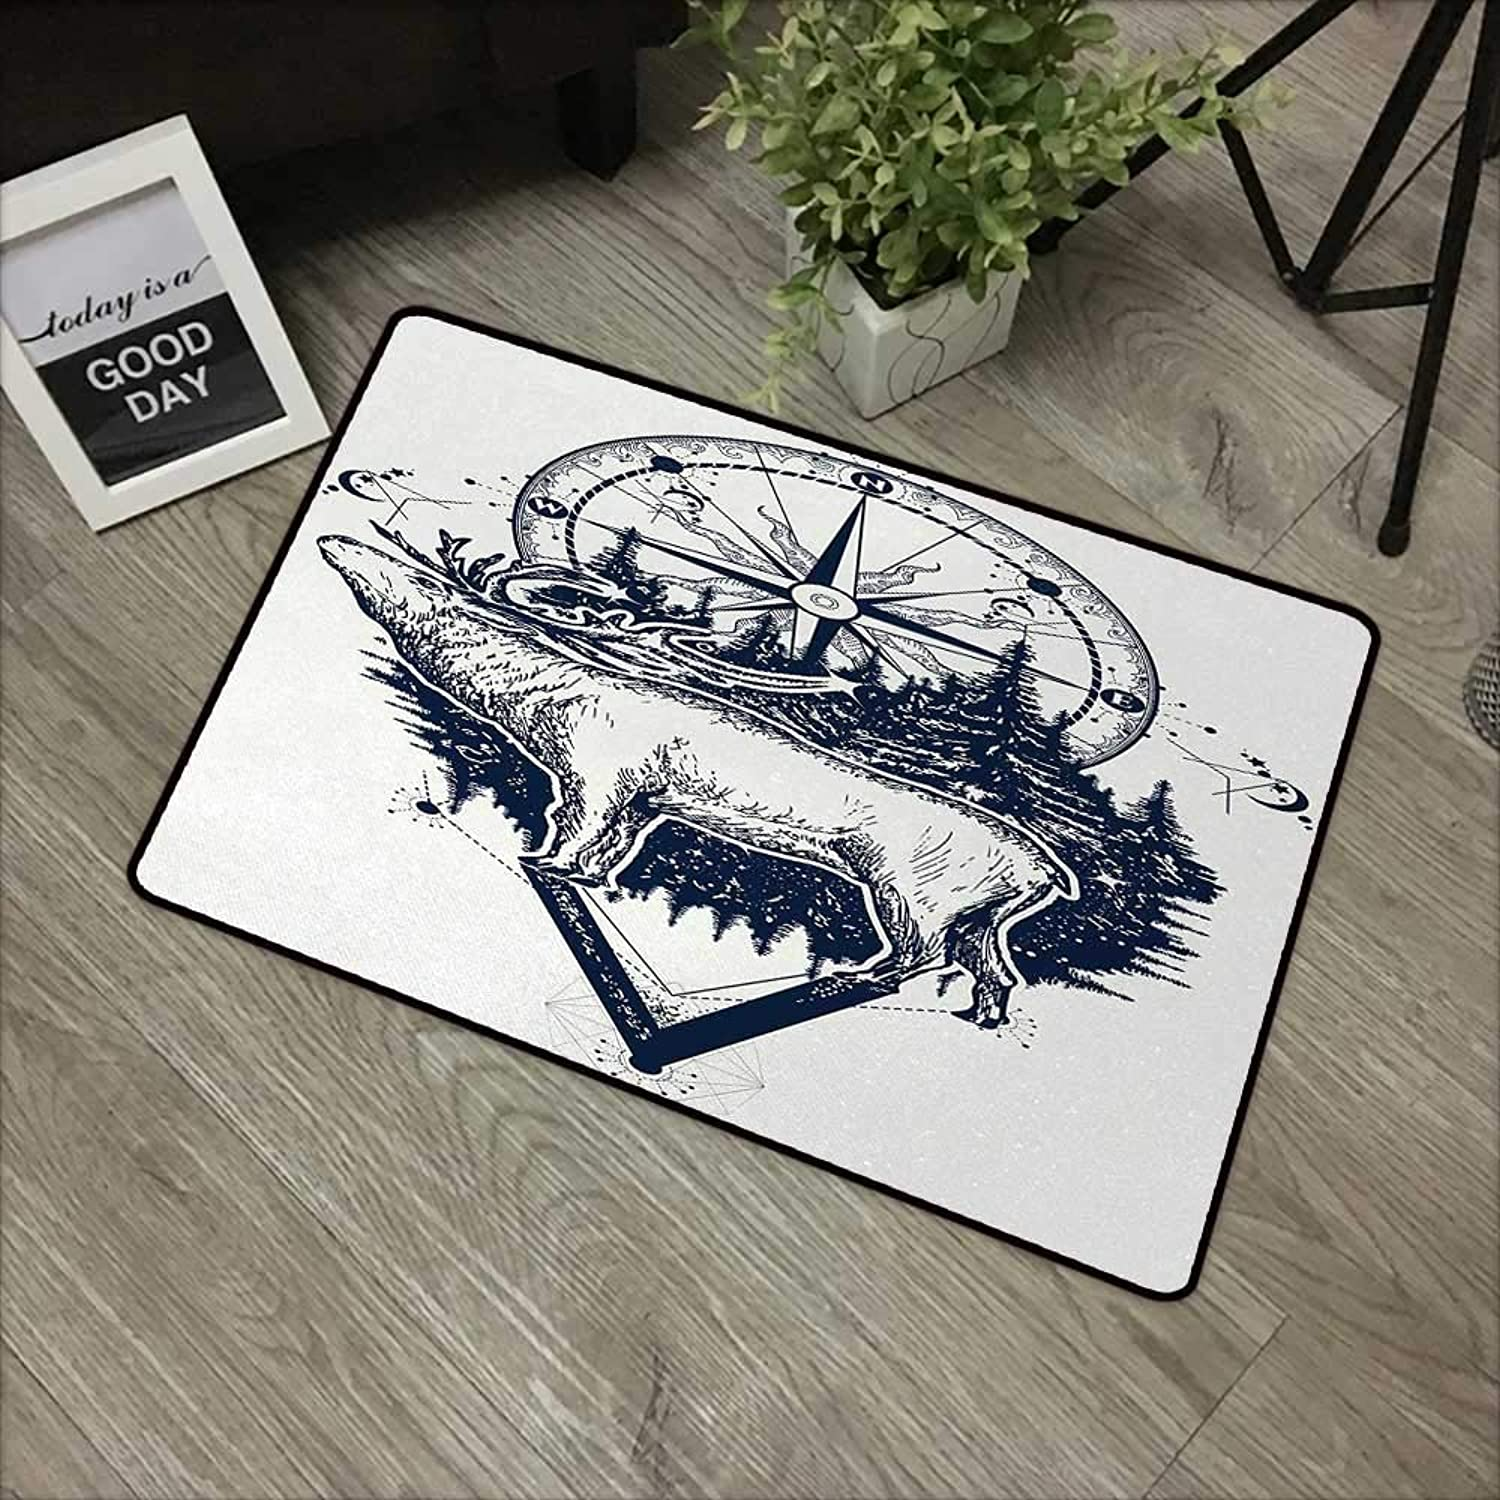 Printed Door mat W35 x L59 INCH Adventure,Reindeer and Compass Ethnic Tribal Travel Symbol Wilderness Forest Outdoors,Dark bluee White with Non-Slip Backing Door Mat Carpet